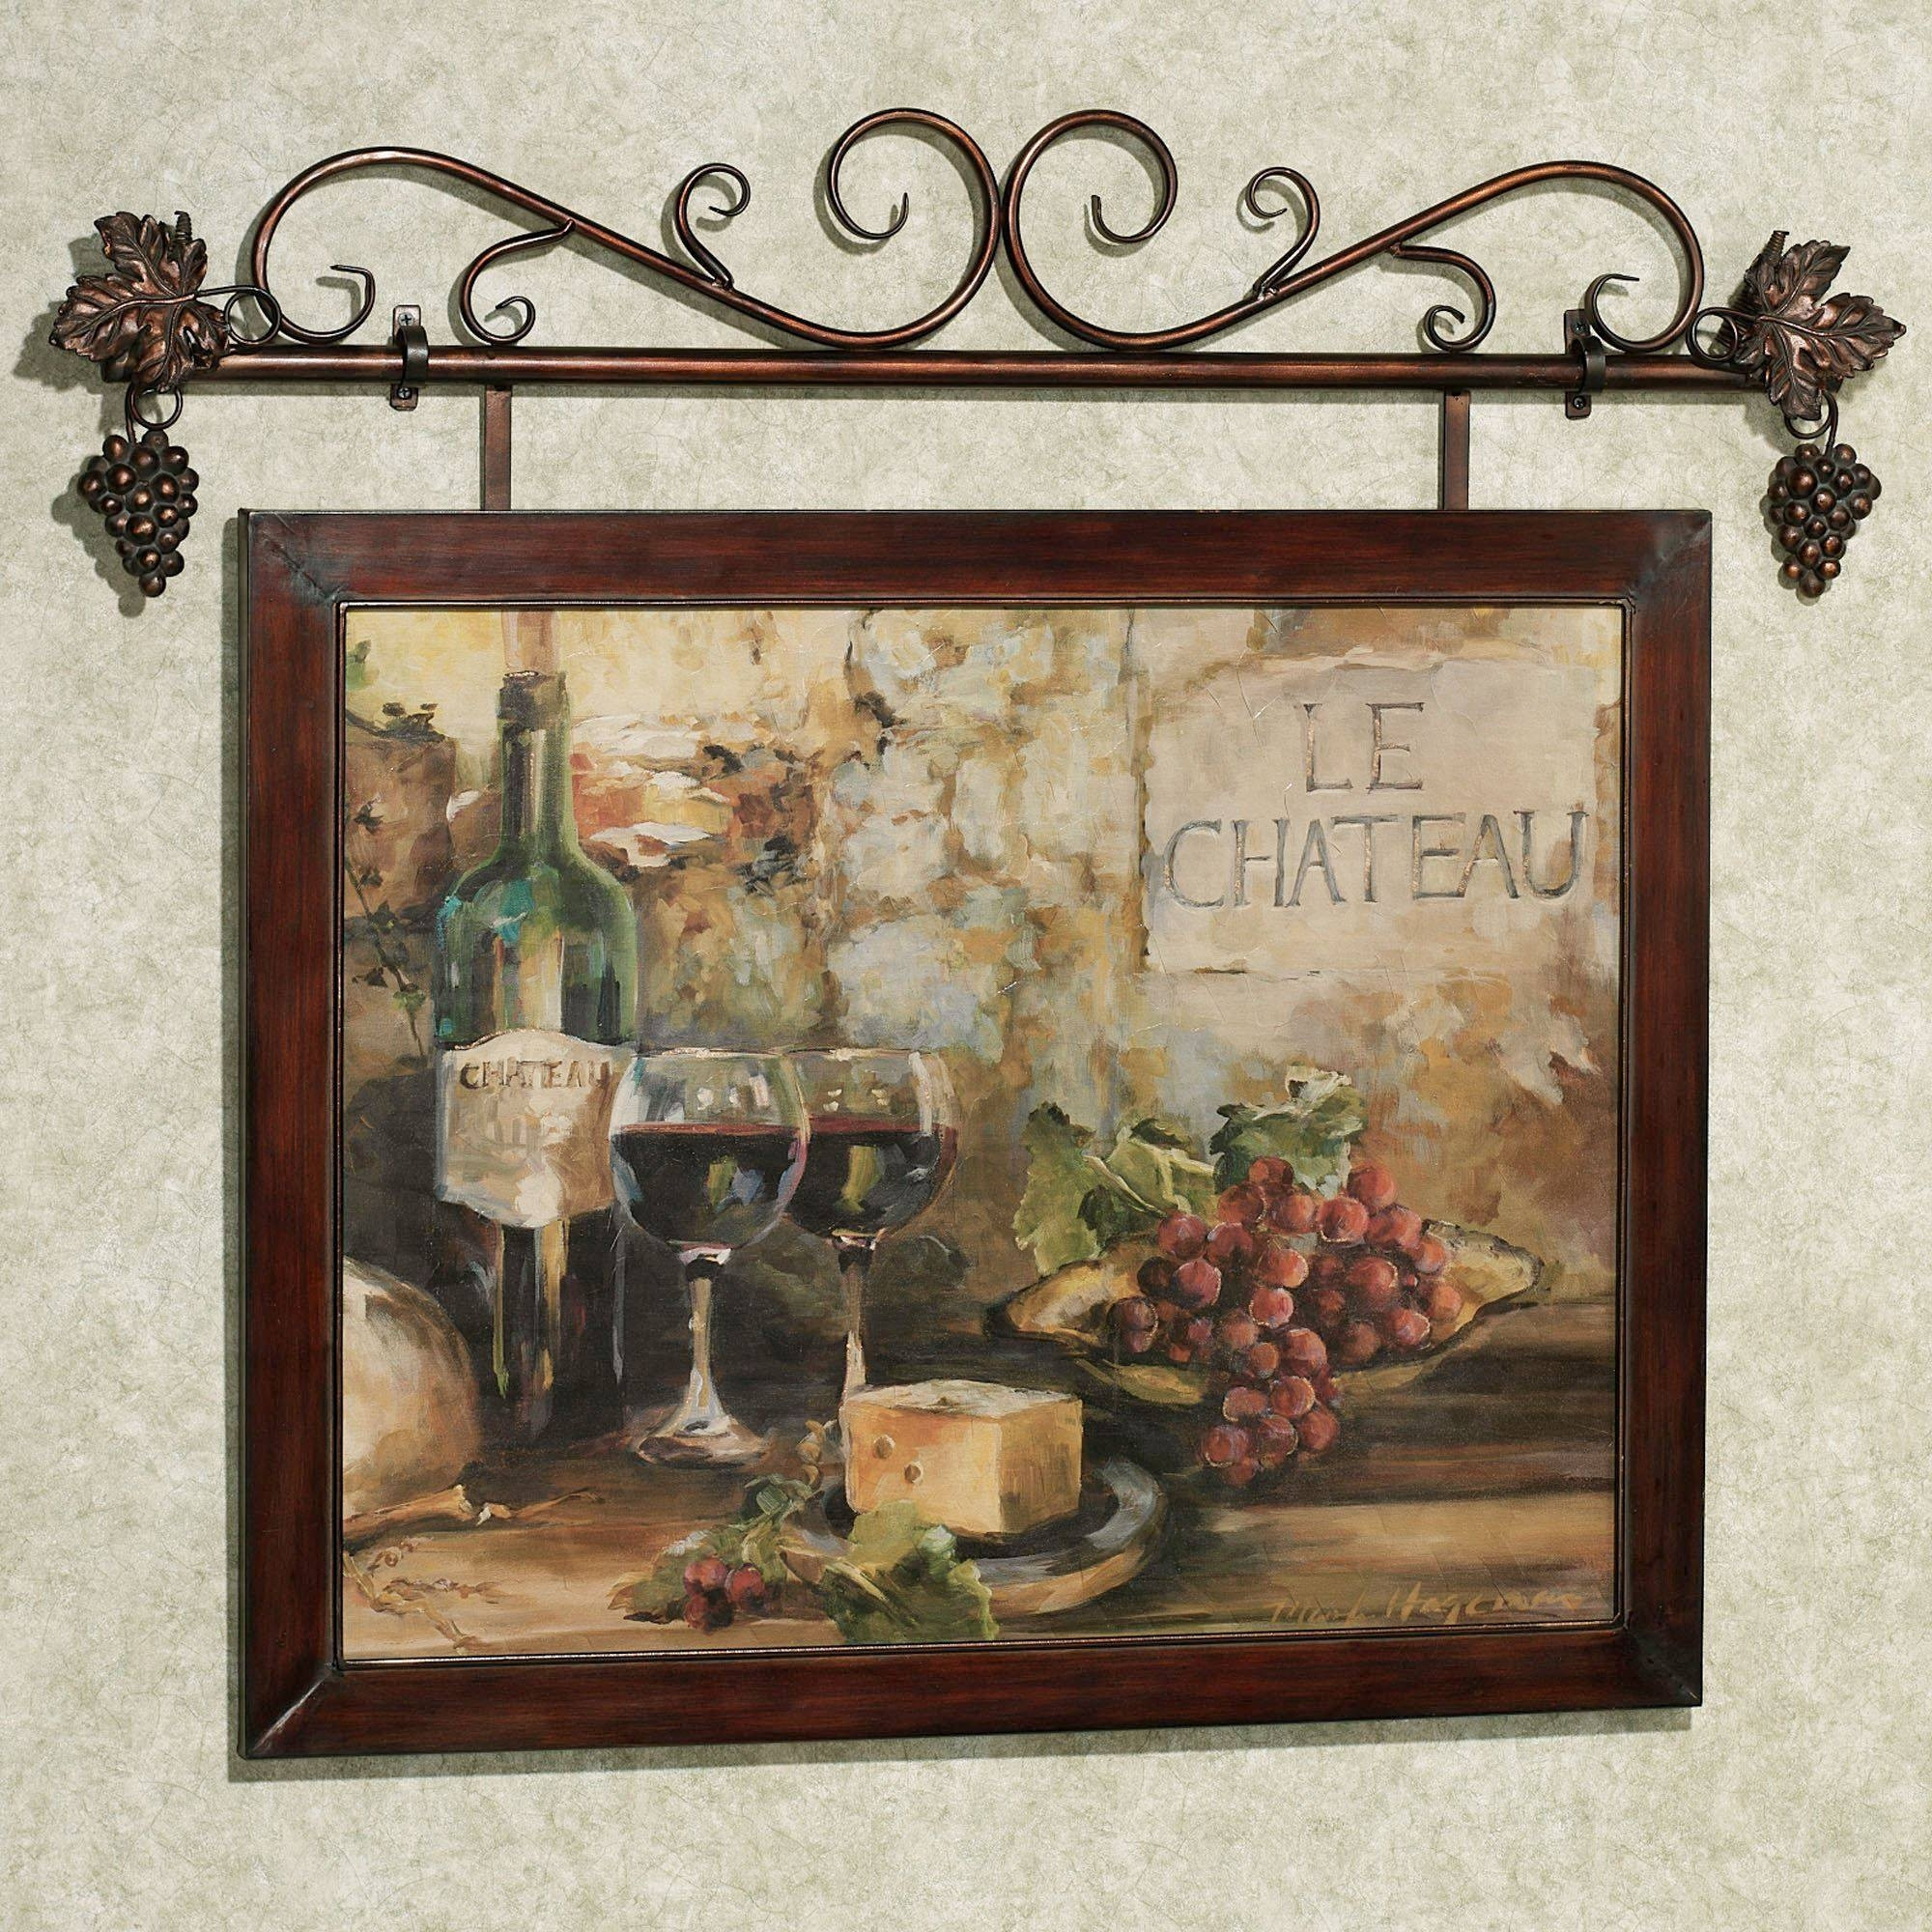 Best ideas about Framed Wall Art . Save or Pin 20 s Walmart Framed Art Now.